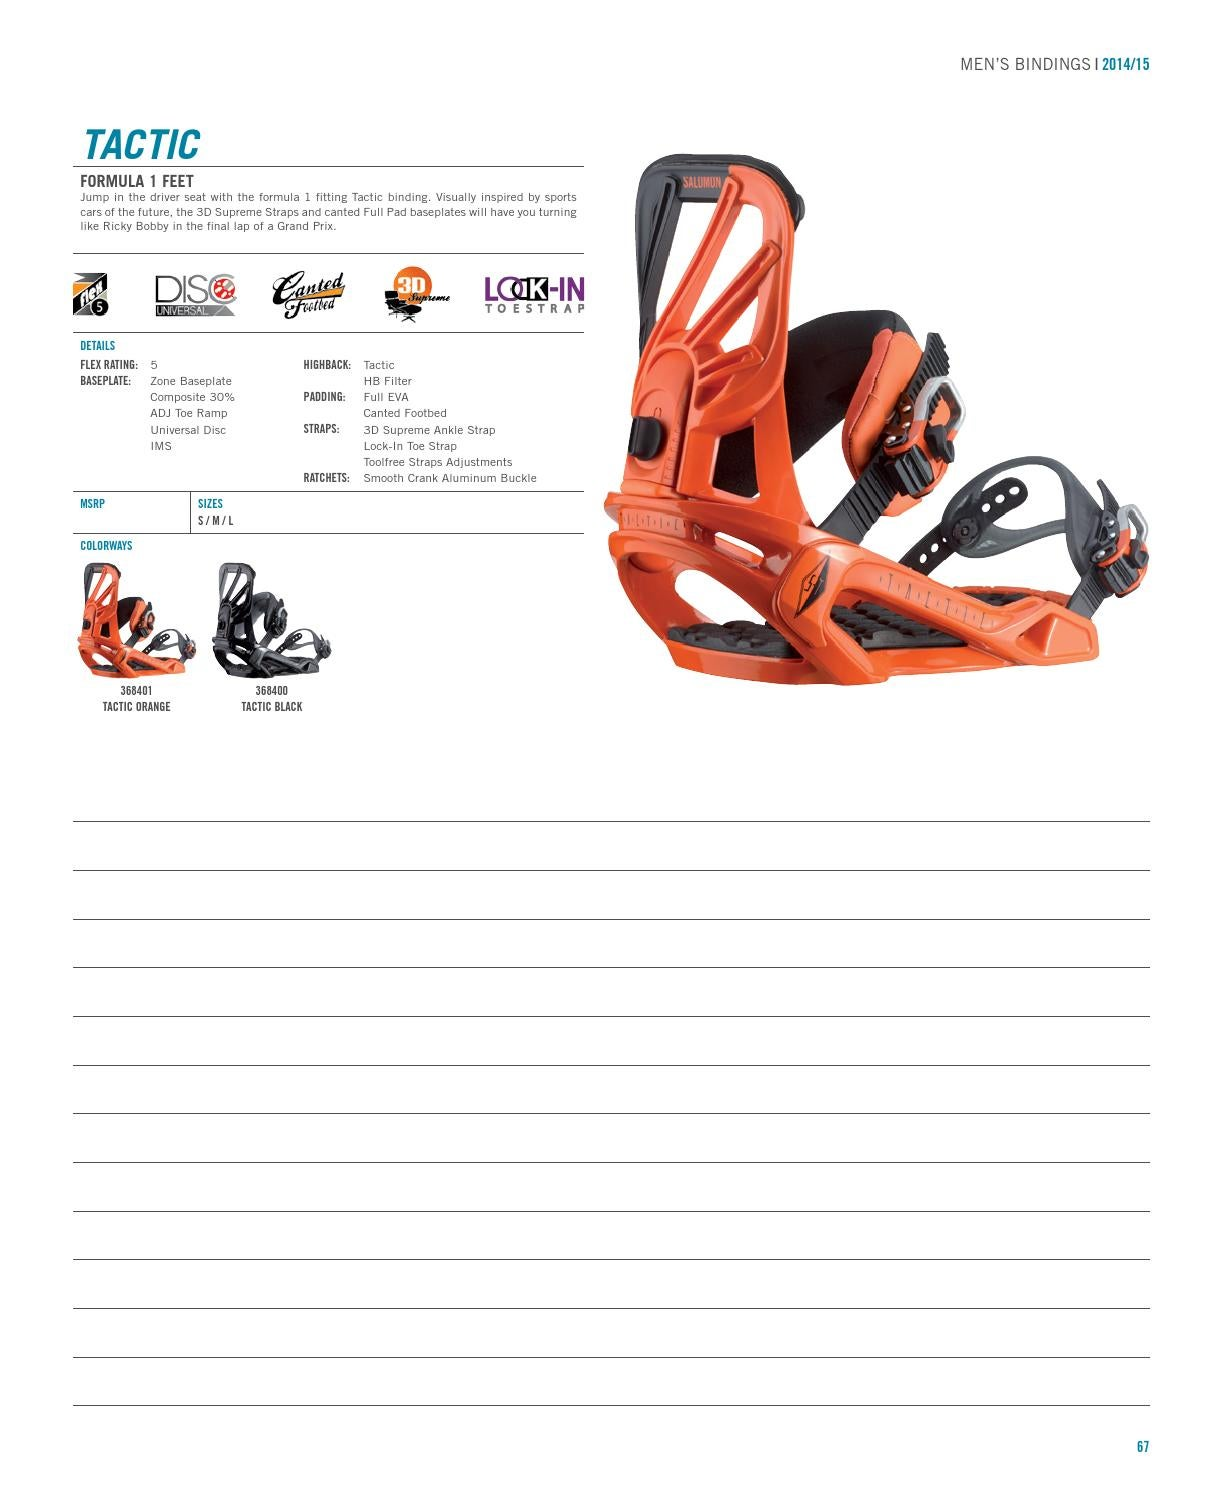 Salomon snowboards 1415 singles by zuzupopo snow - issuu